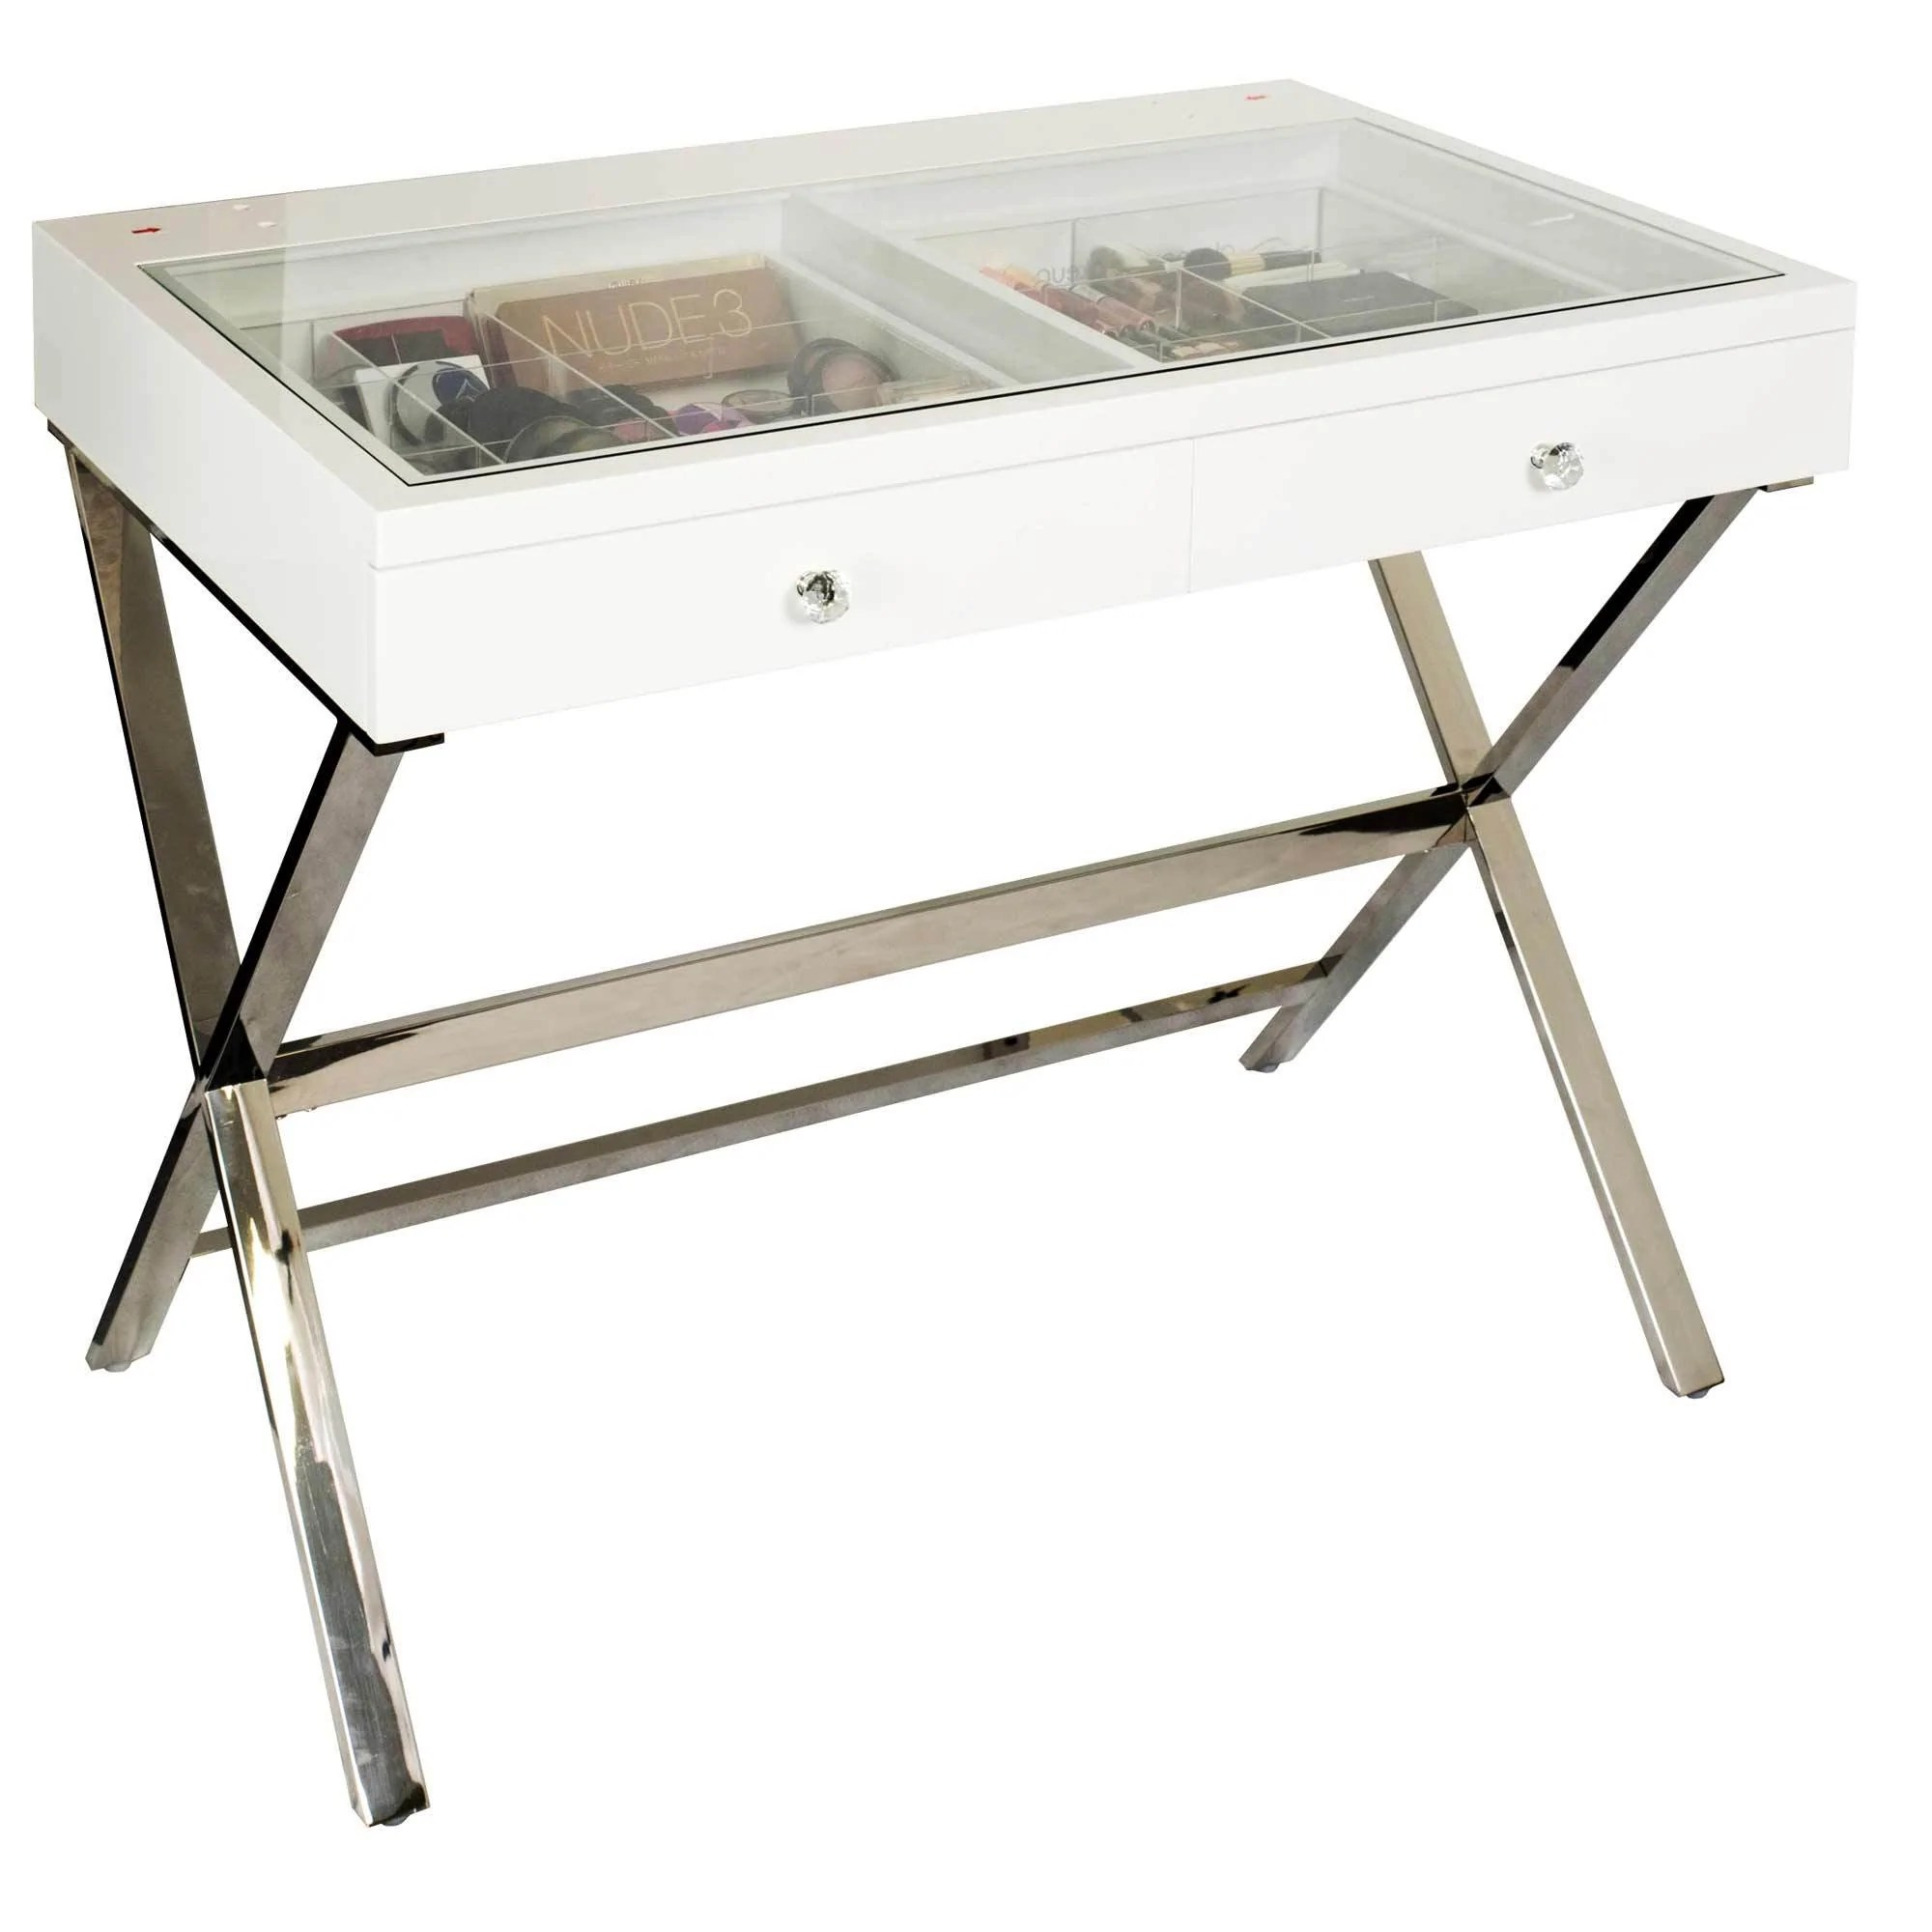 Makeup Table Perth Makeup Vanity Table Online In Australia Glamour Makeup Mirrors